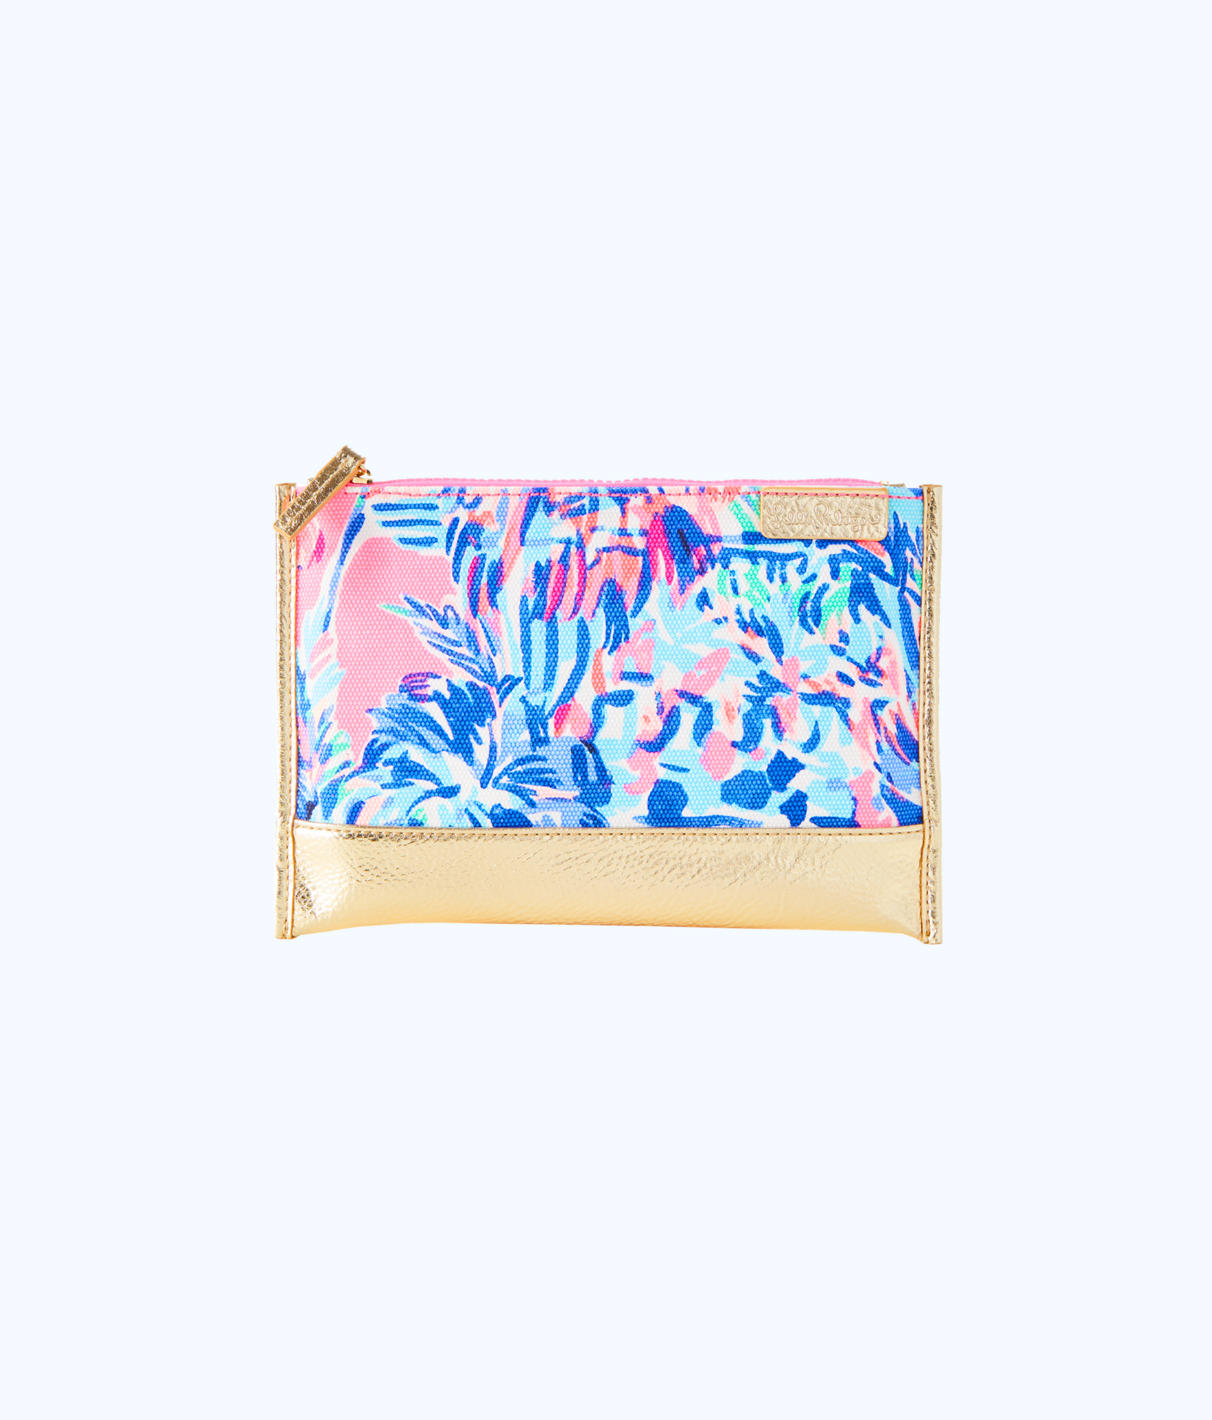 Lilly Pulitzer Lilly Pulitzer Gypset Pouch